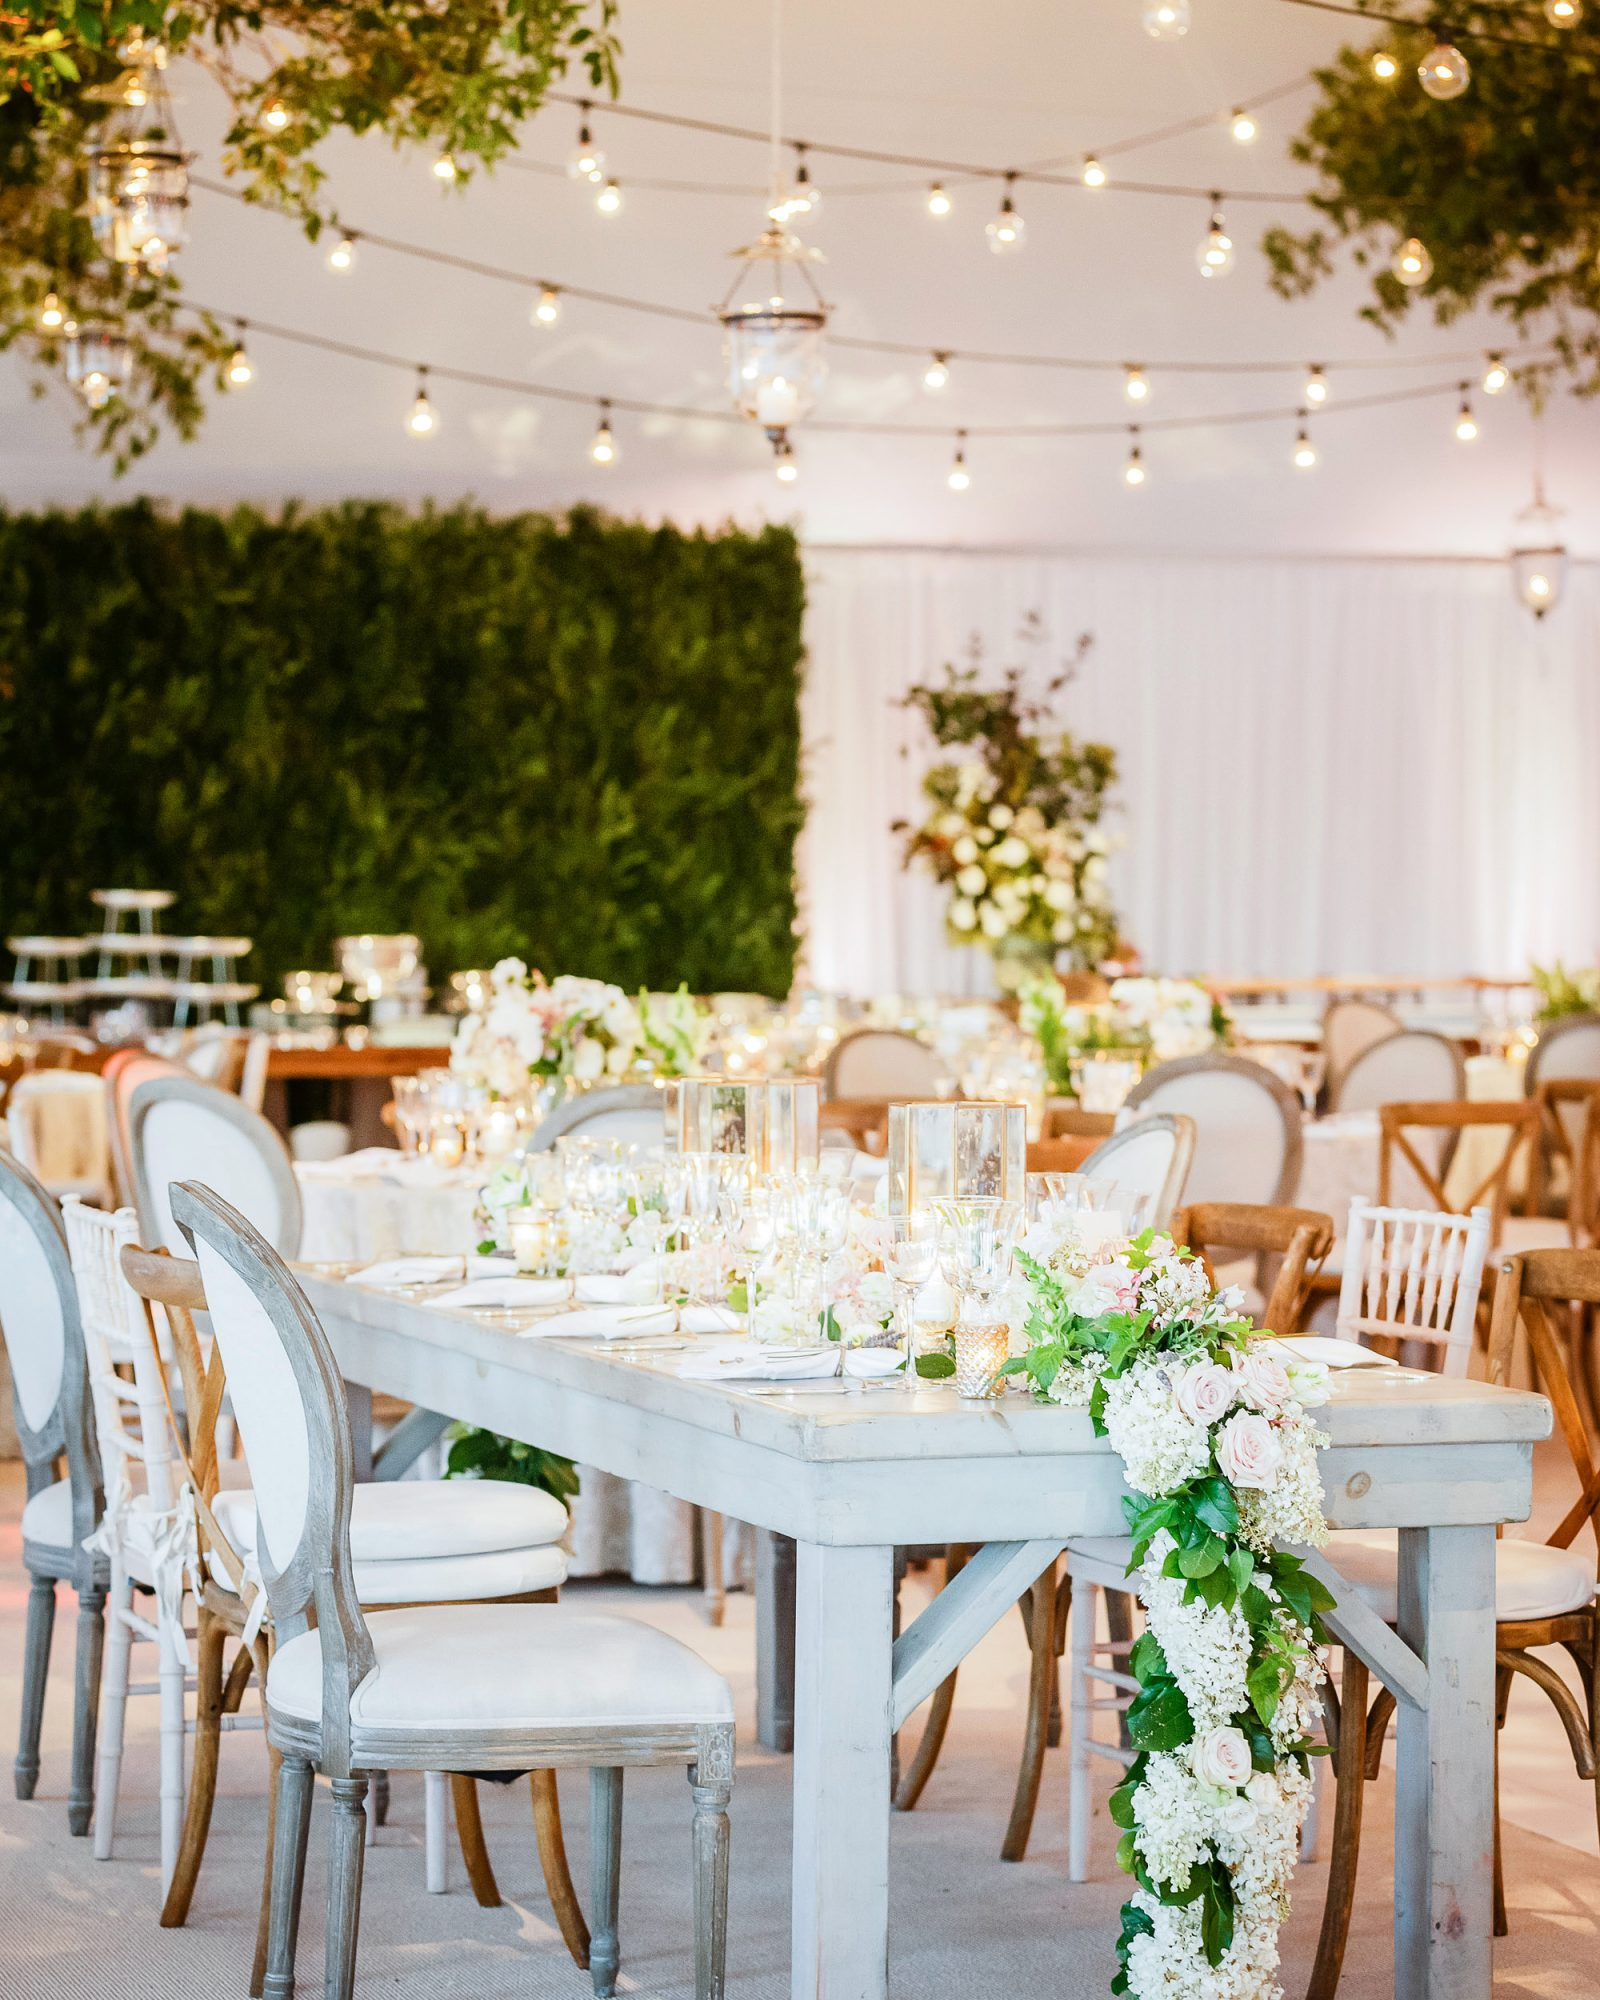 night wedding idea natural elements and string lights in tent